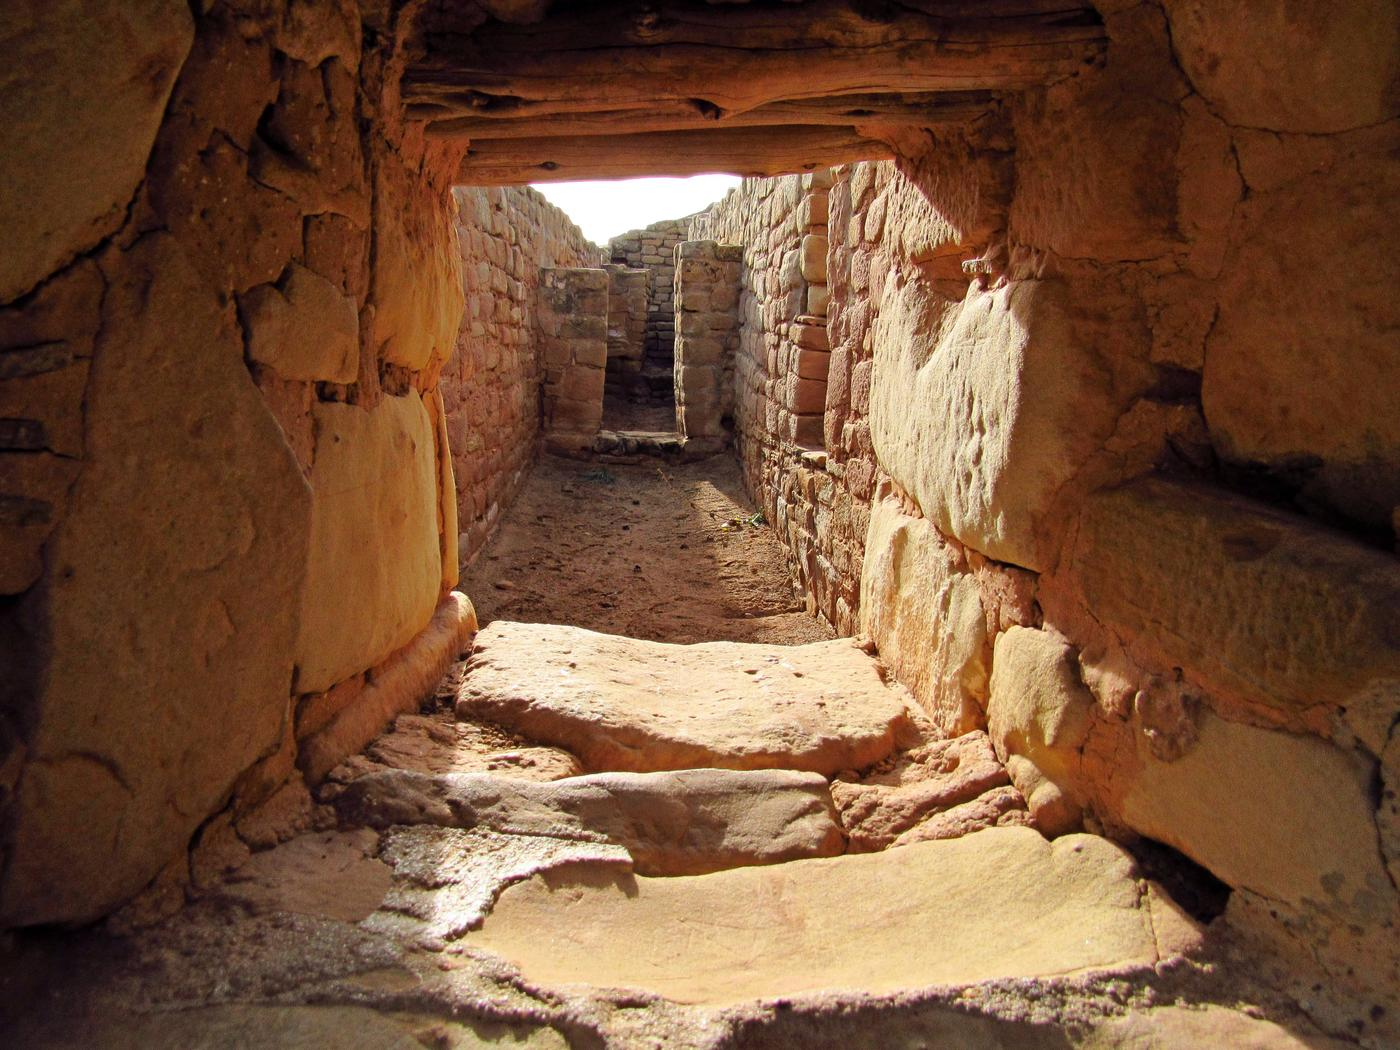 Interior of Ancient Cliff Dwellings